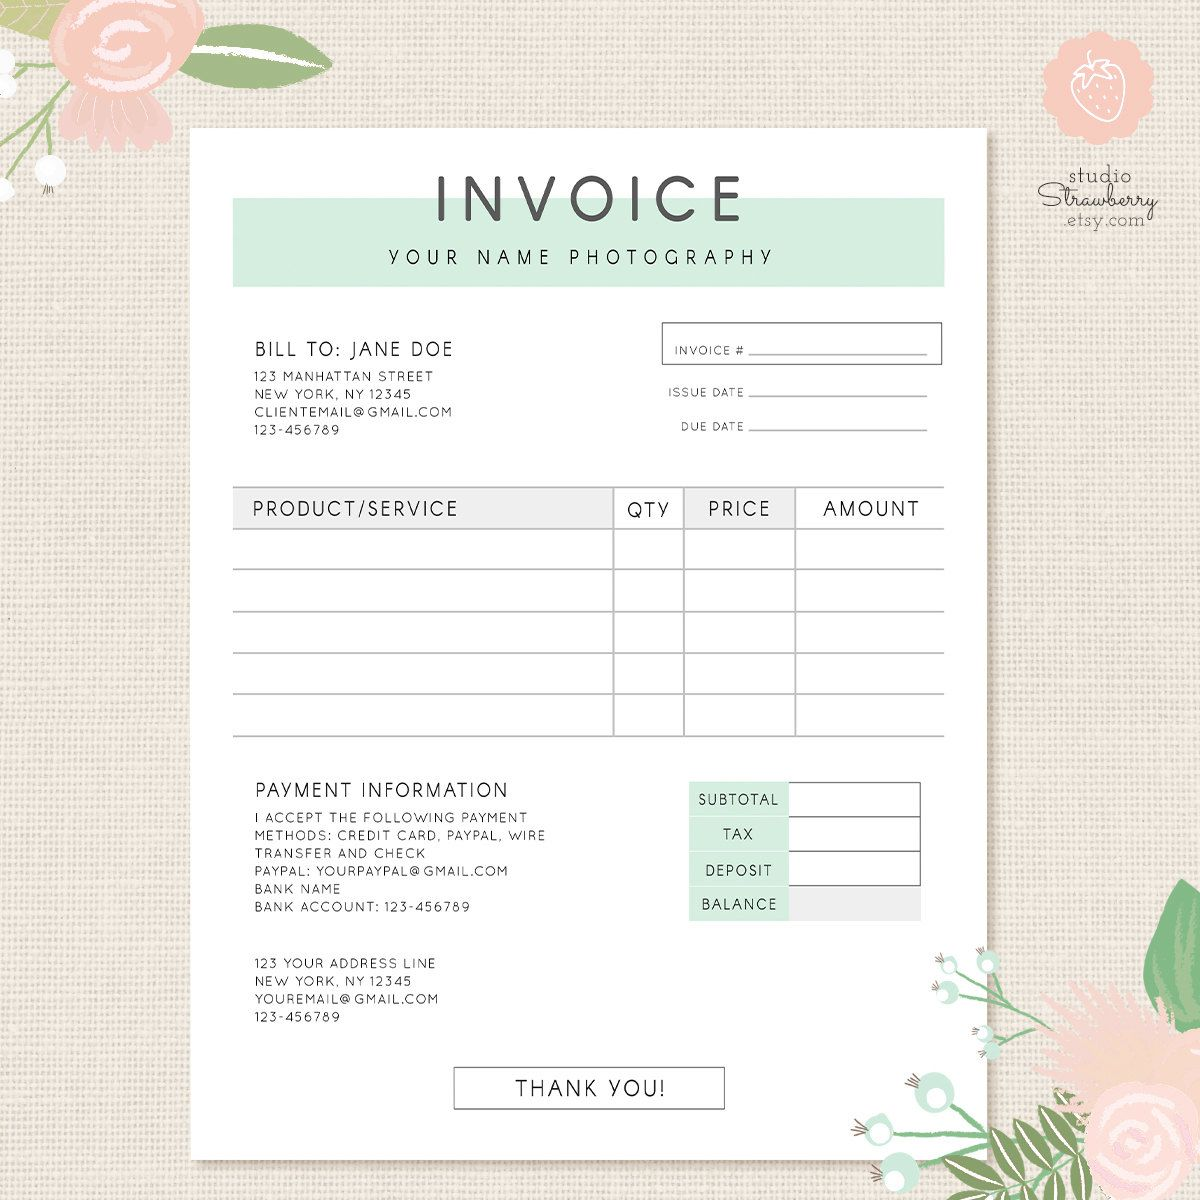 invoice template photography invoice business invoice receipt template for photographers photography forms photoshop template psd file - Business Invoice